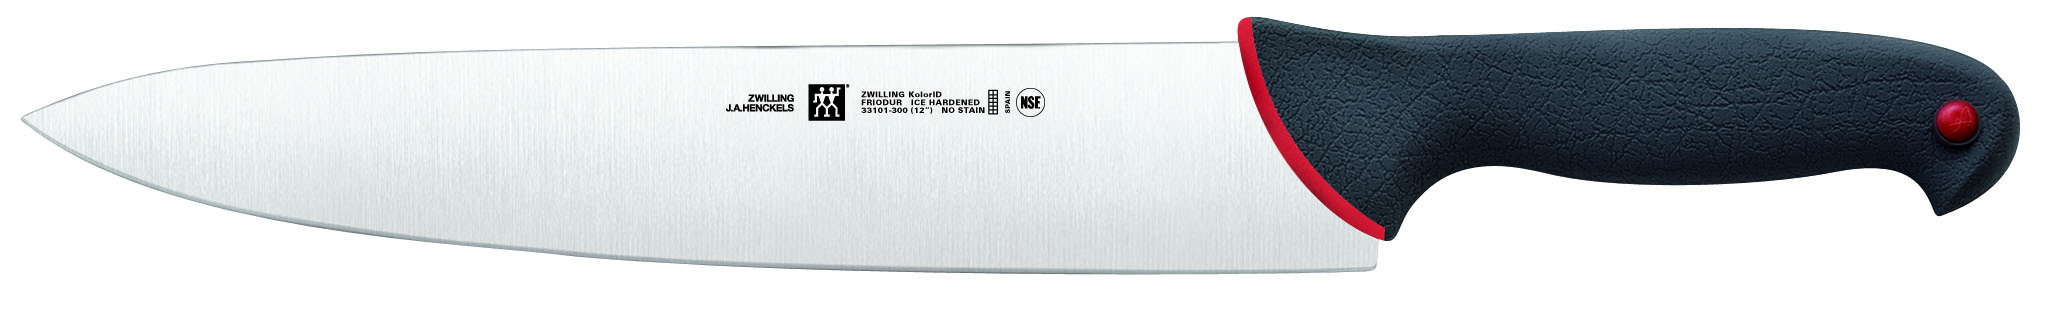 "Zwilling J A Henckels KolorID 12"" Chef's Knife"